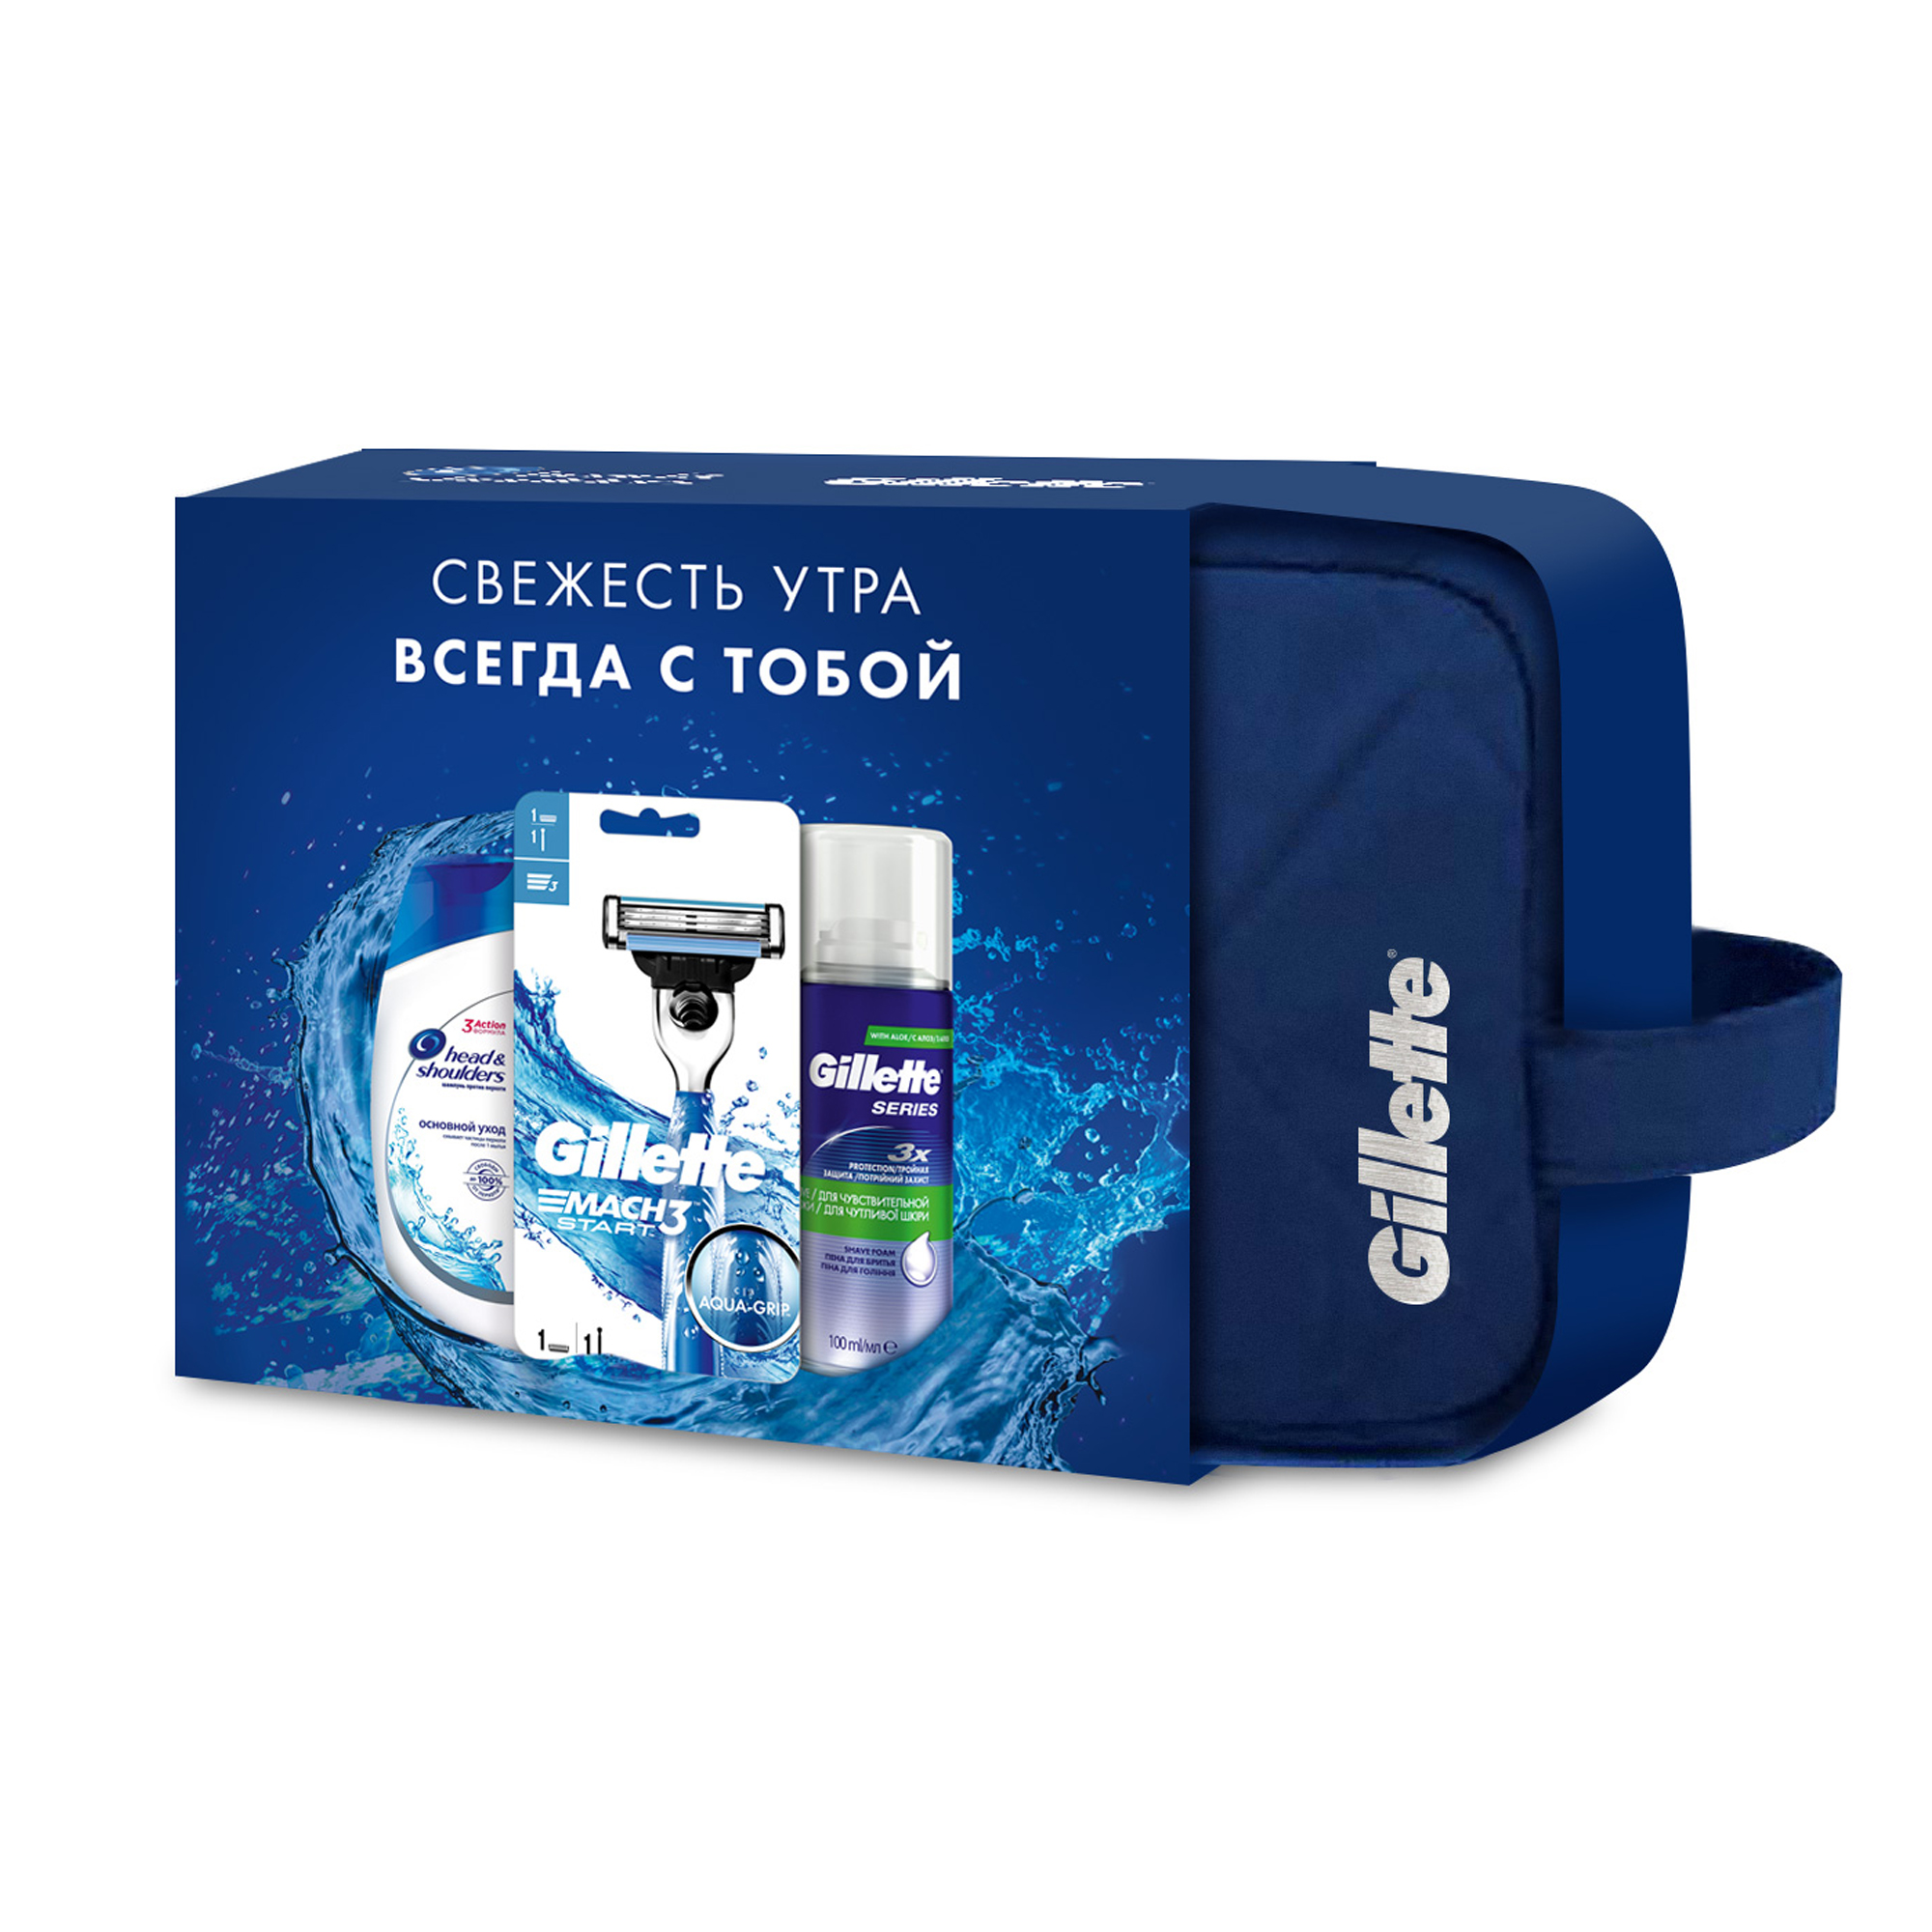 Gillette Gift Set (Cosmetic Bag + Razor with 1 Changeable Cassette + Shaving Foam, 100 ml + Head & Shoulders Shampoo, 90 ml.)